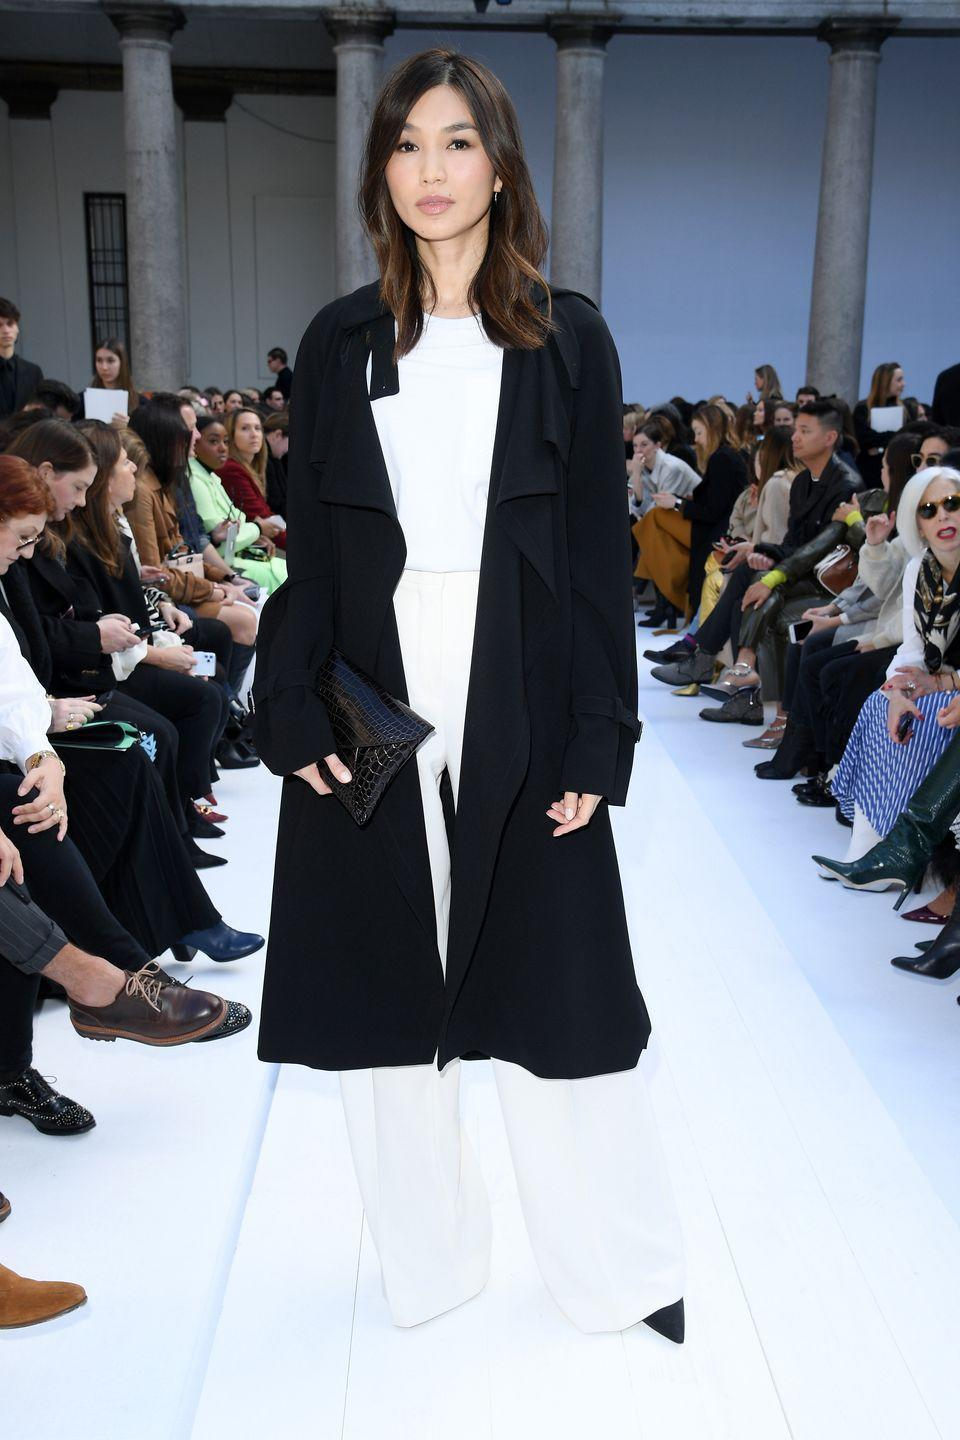 <p>Wearing MaxMara, Chan attended the designer's Autumn/Winter 20/21 show during Milan Fashion Week.</p><p>The actress wore an all white co-ord with a contrasting black duster Mac and matching black croc clutch to finish off the look. </p>